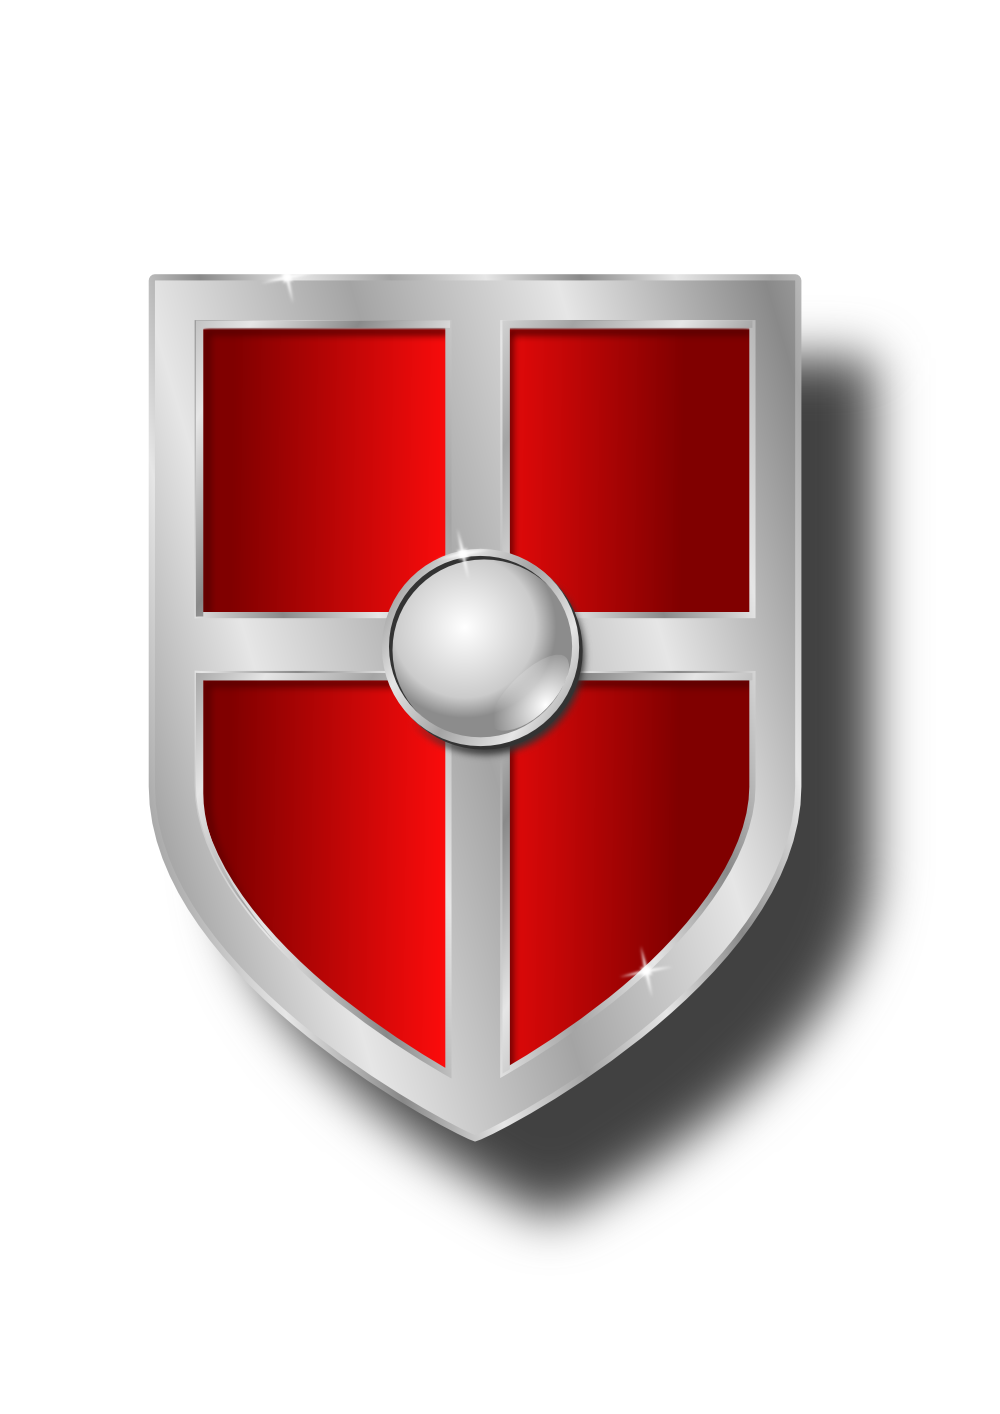 Shield clipart Clipart Clipart Free Sword Shield